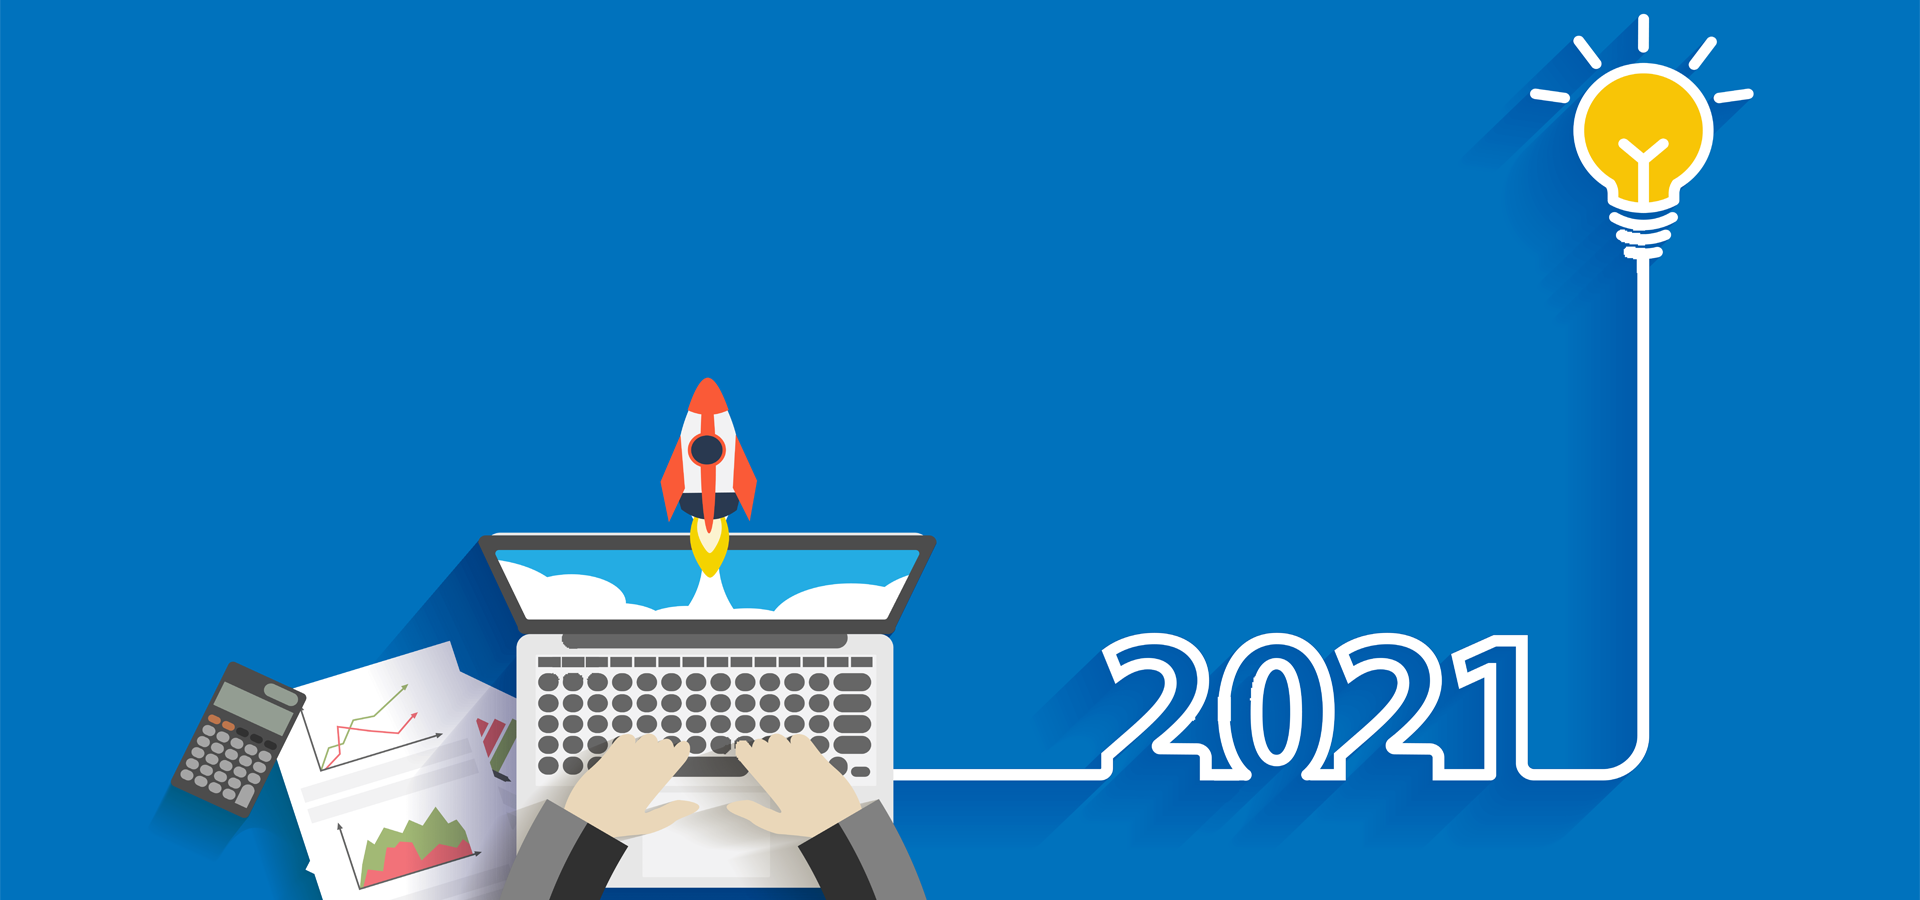 Digital Marketing Trends 2021.